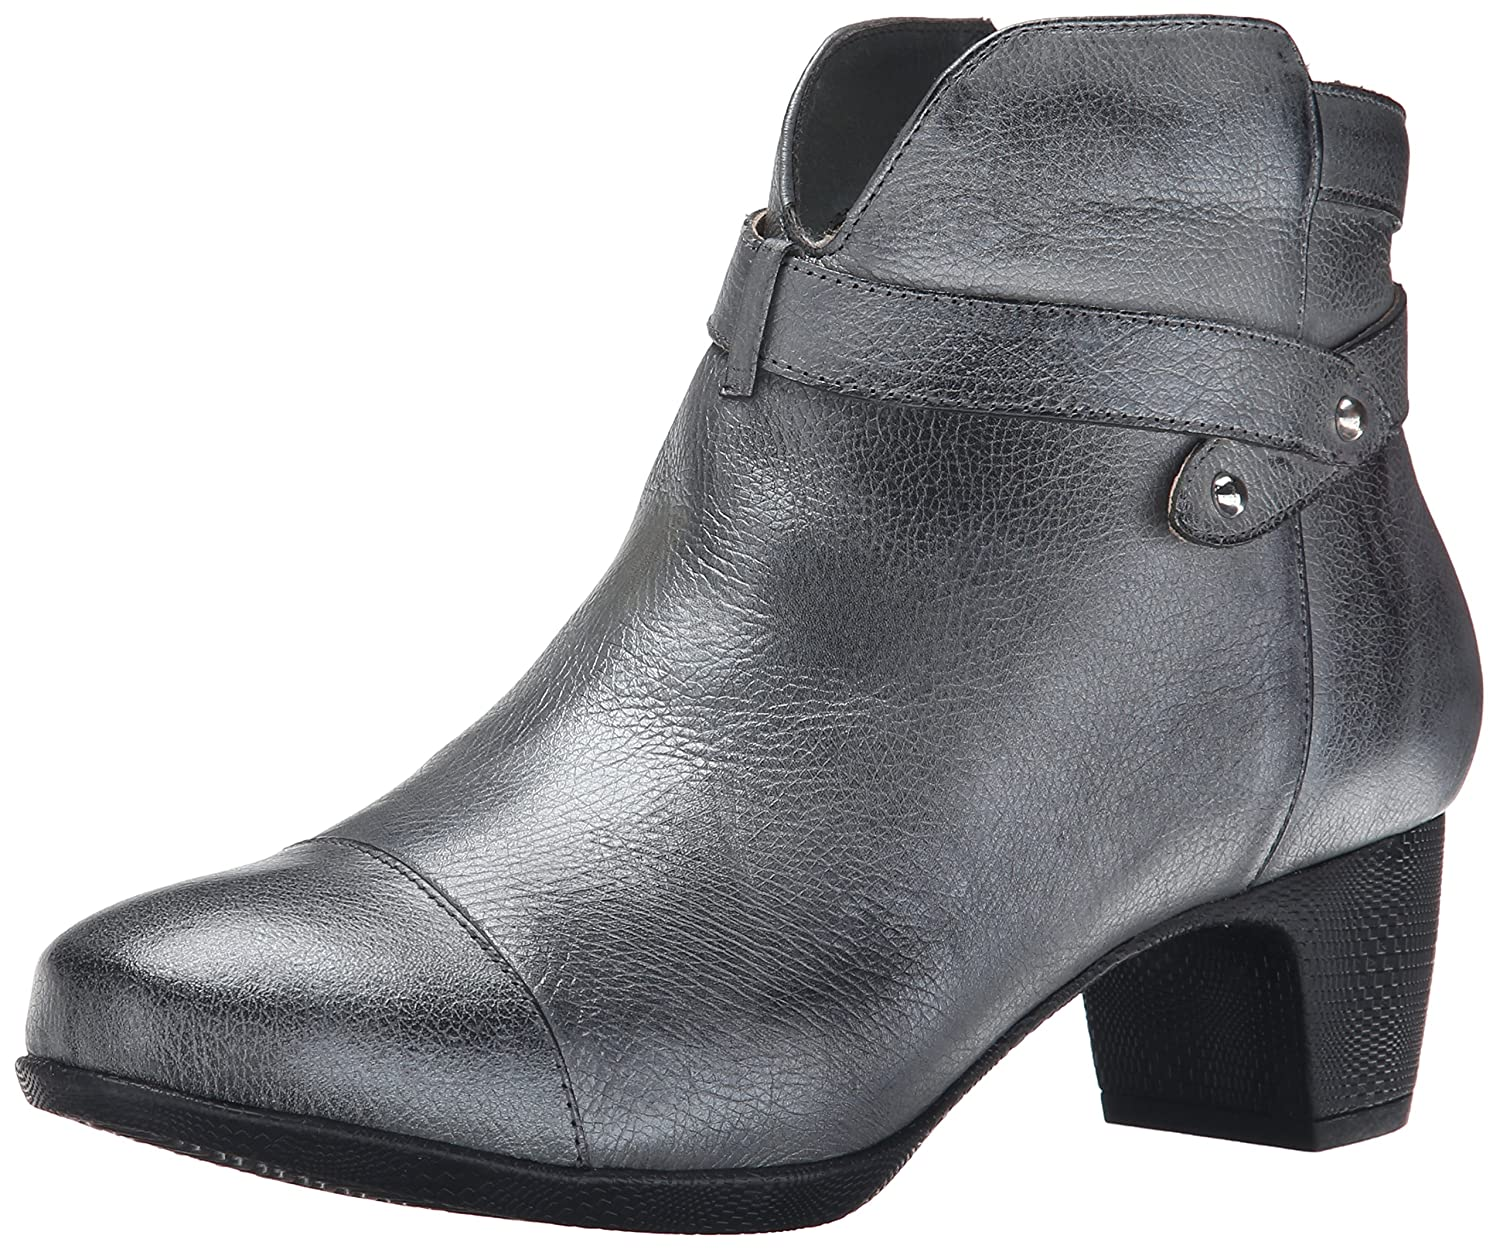 SoftWalk Women's Ivanhoe Harness Boot B00S02UHEY 8 W US|Pewter